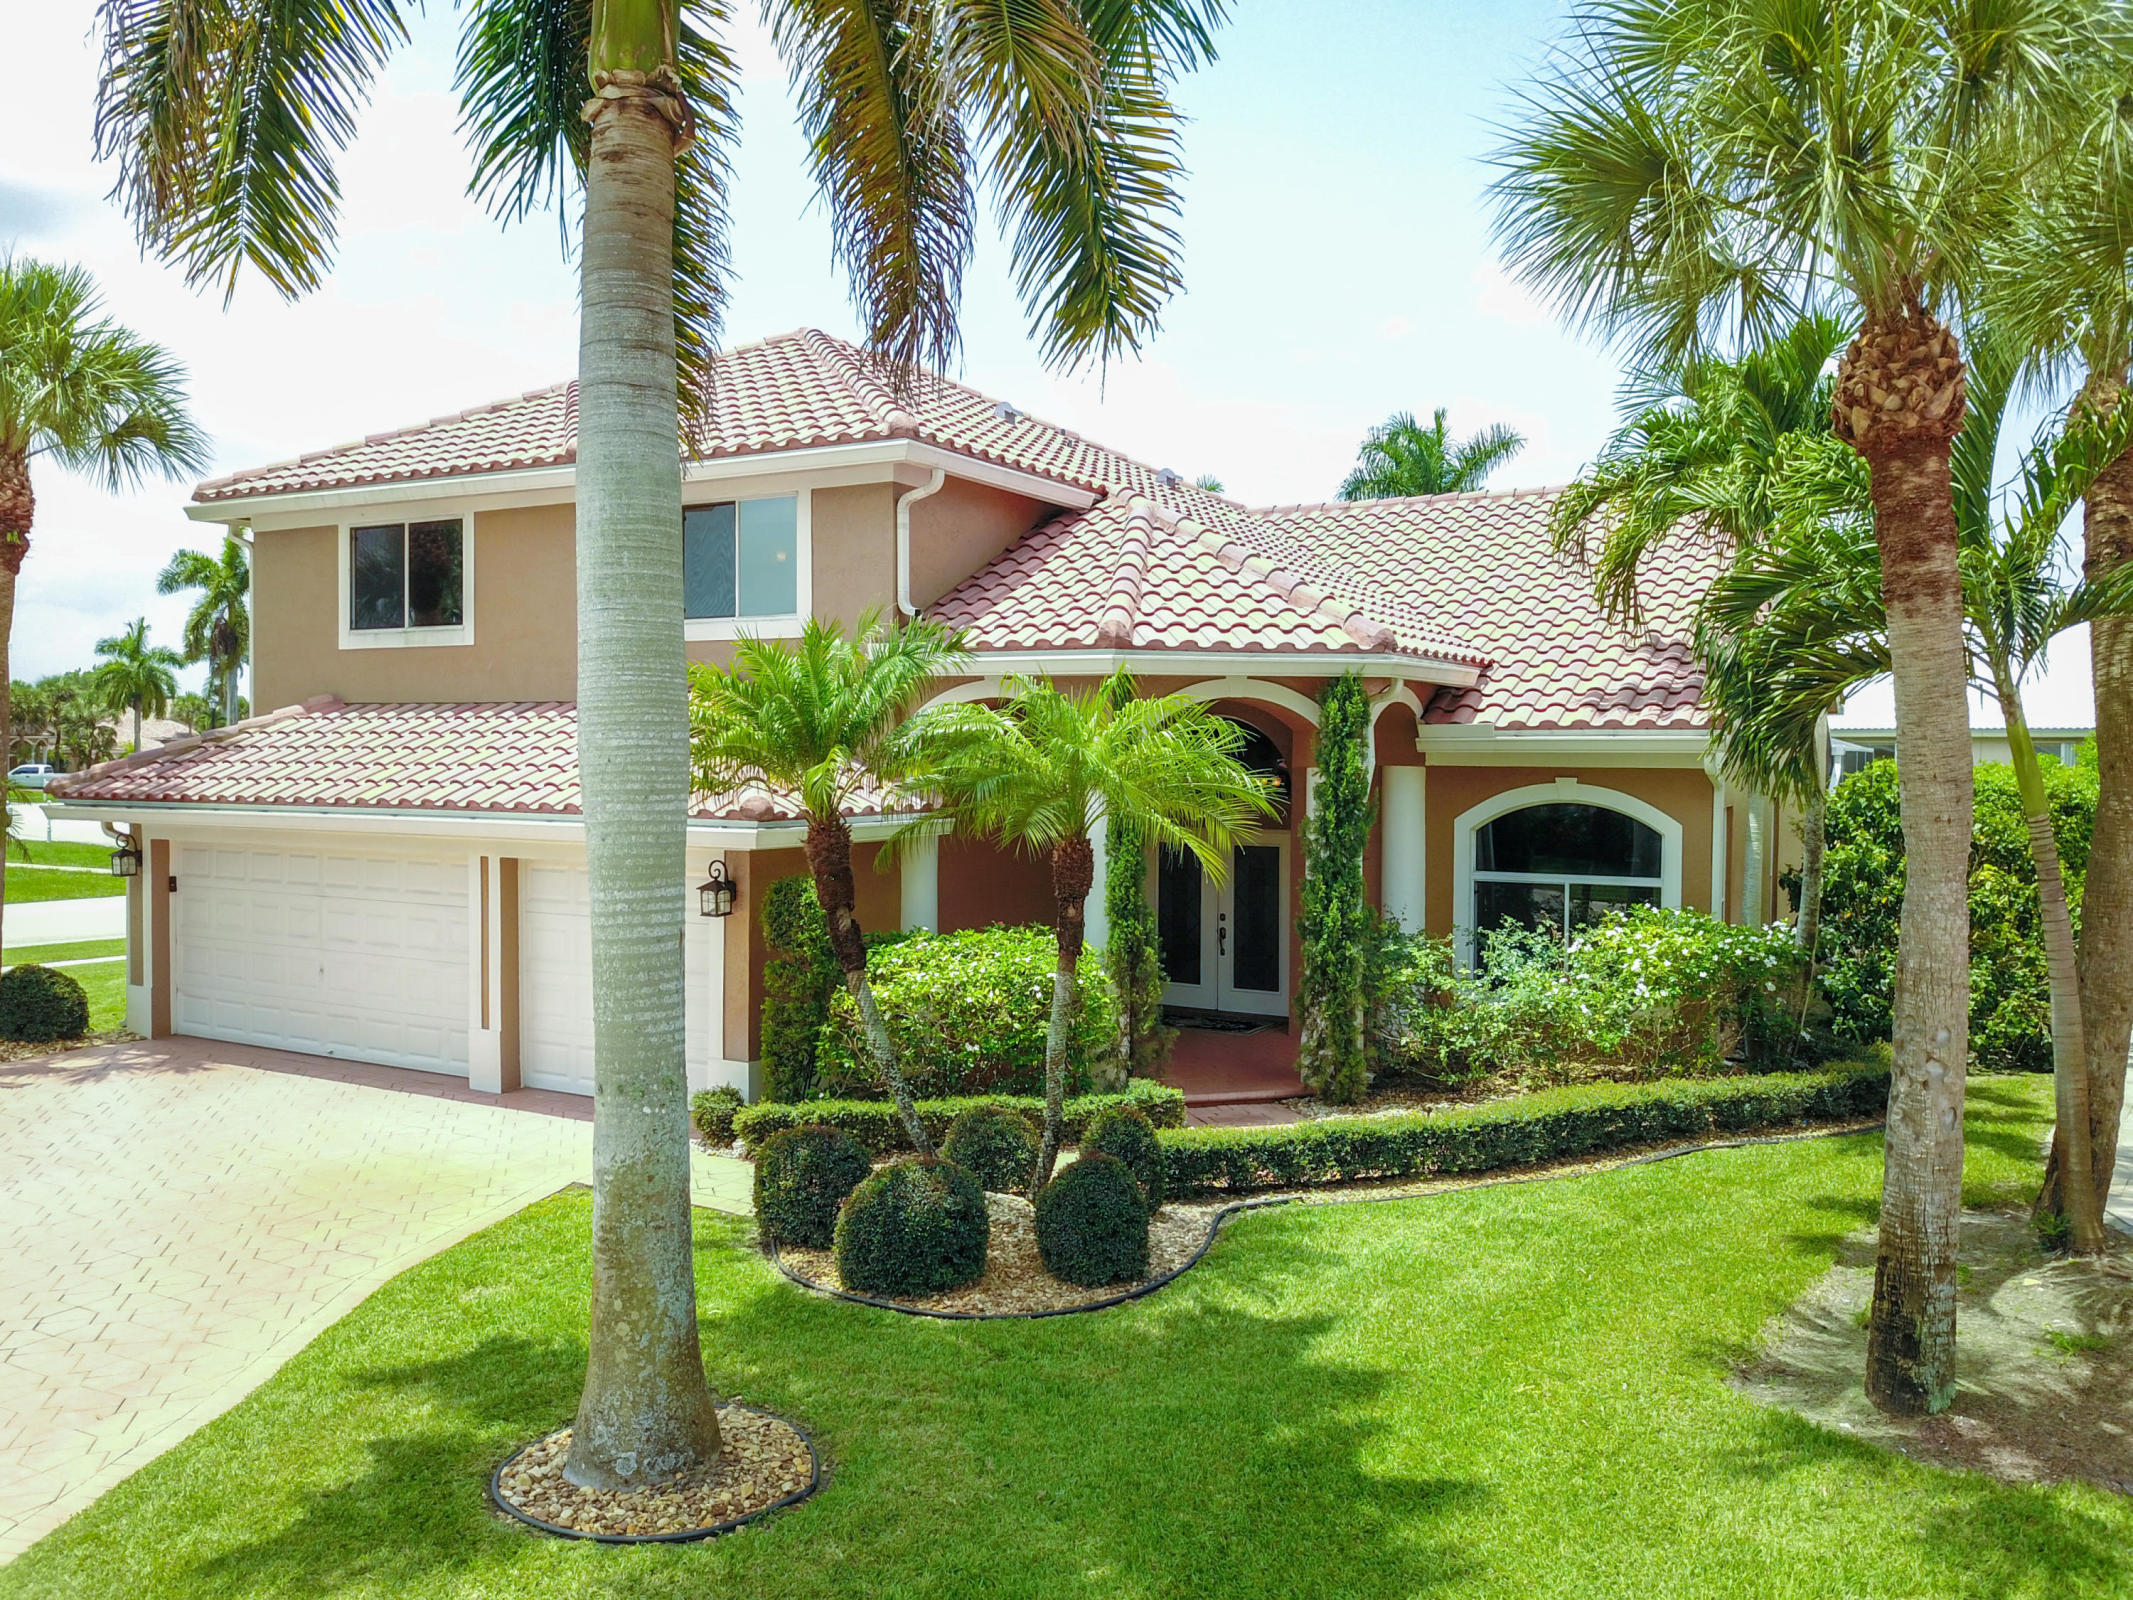 Photo of 19373 Lost Oaks Lane, Boca Raton, FL 33498